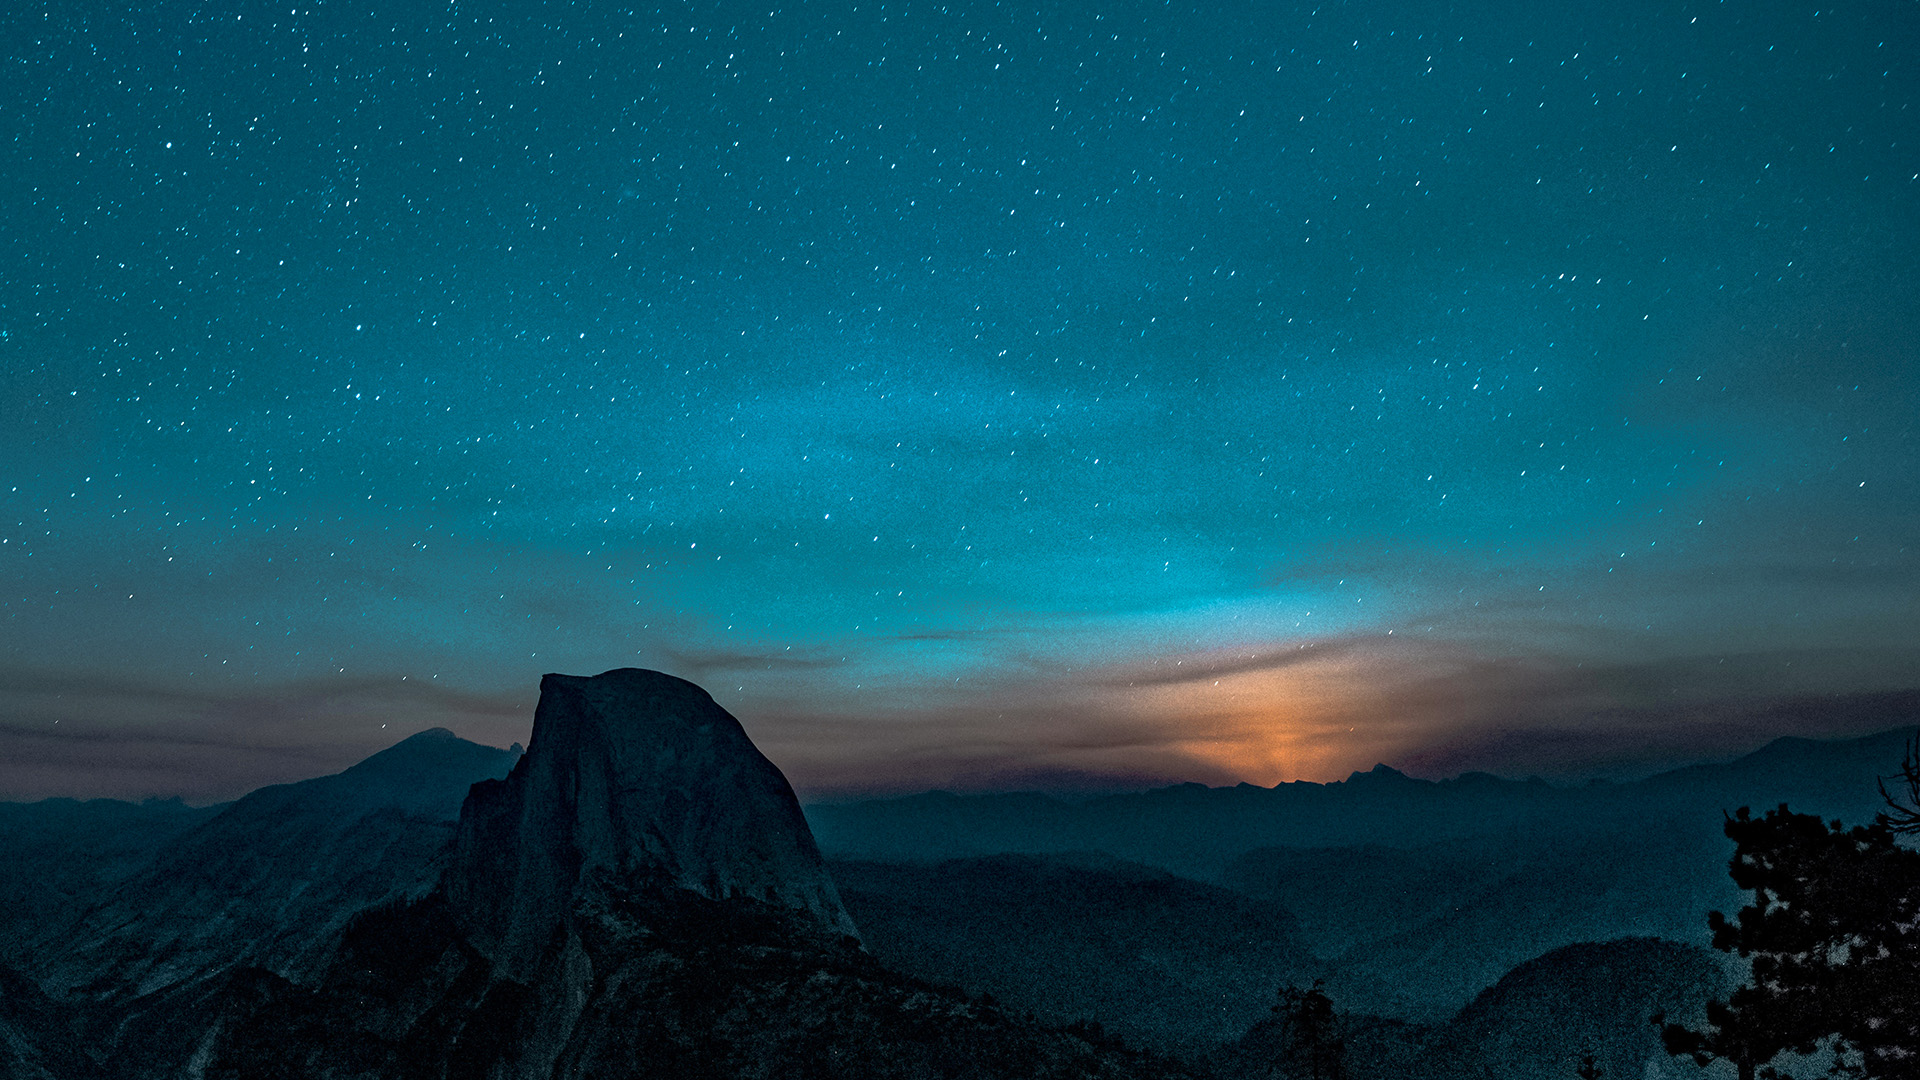 ns52-mountain-night-sky-star-space-nature-wallpaper